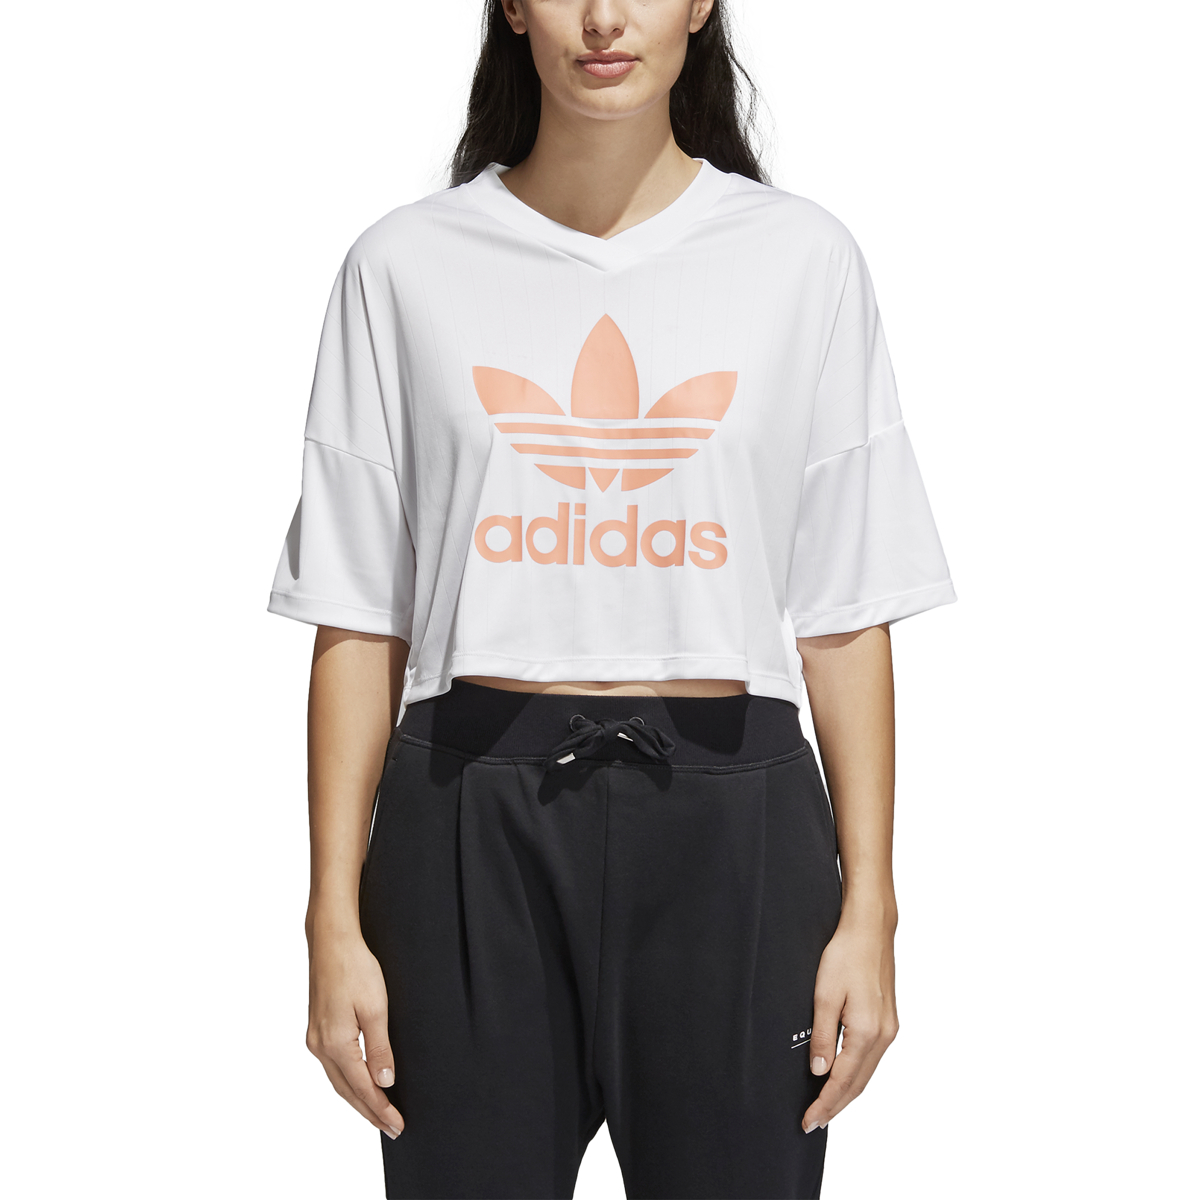 Adidas Women's Originals Trefoil Cropped Length Tee White Chalk Coral cd6875